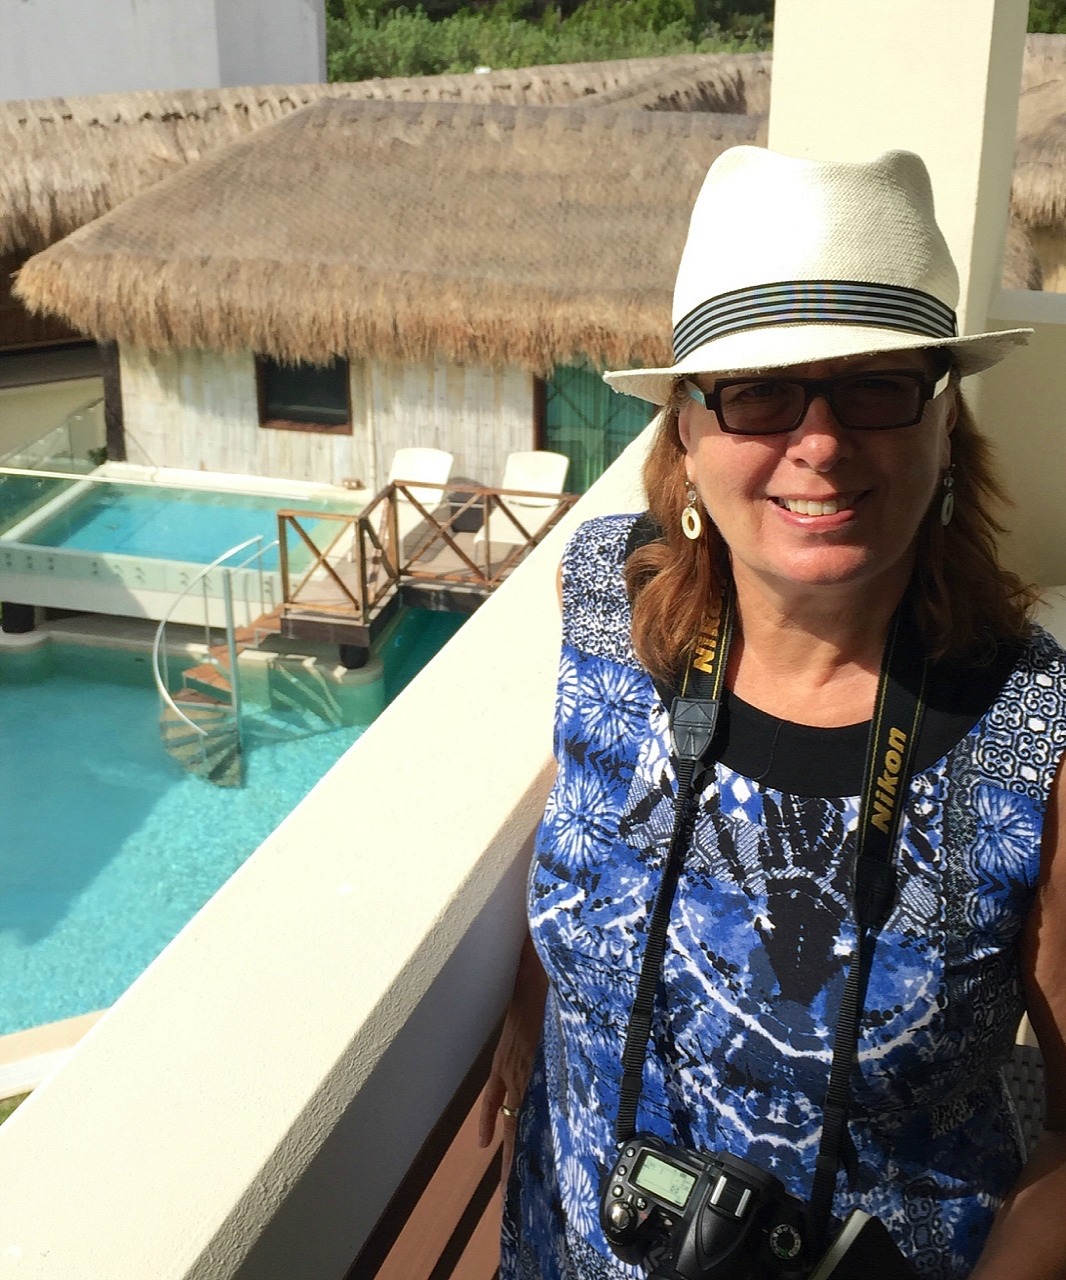 WSGT Travel Influencer: Michele Peterson of @atastefortravel